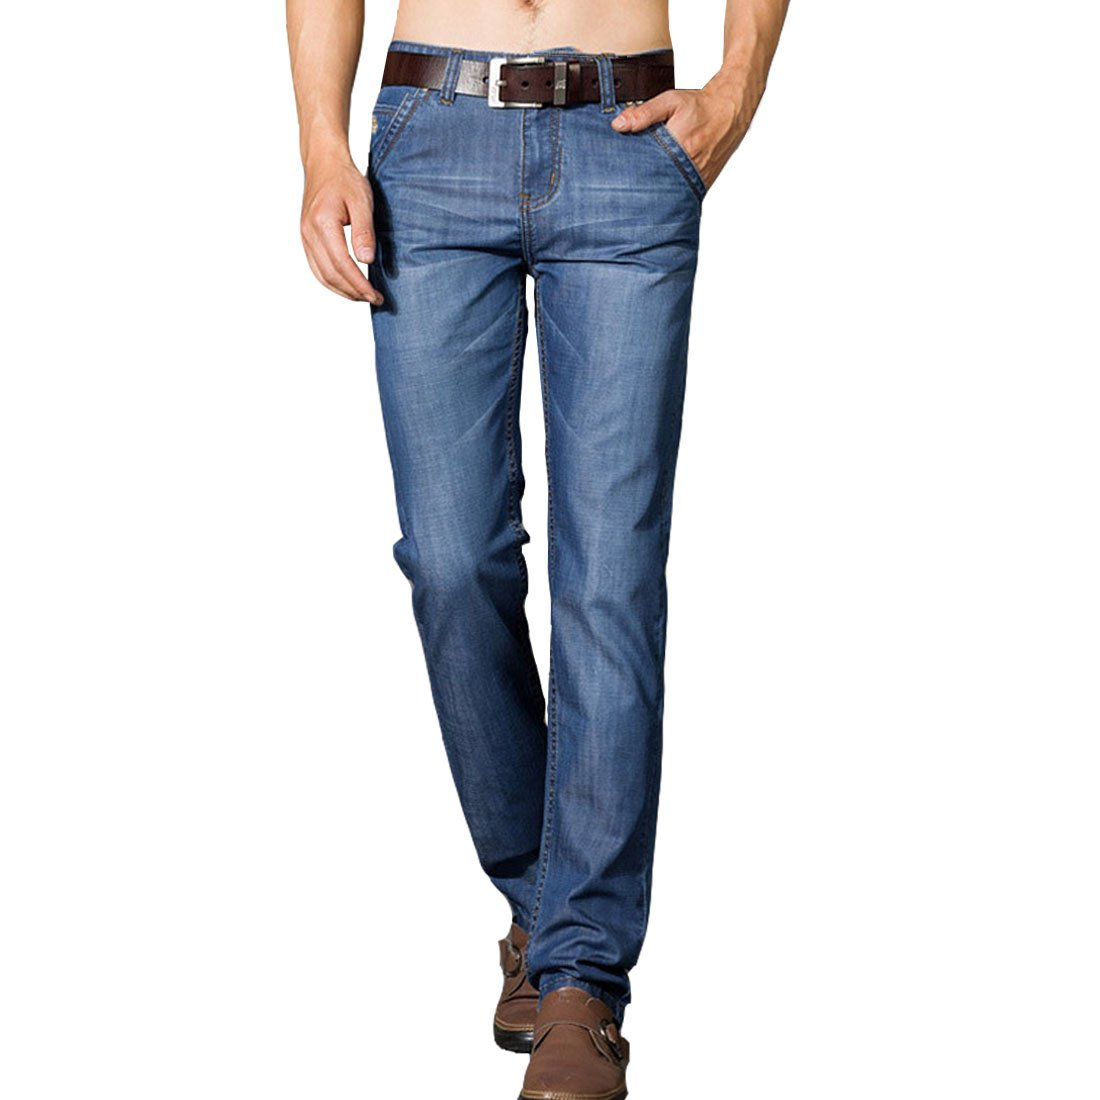 Hzcx Fashion Regular Straight Fit Elastic Lightweight Classic Jeans for Men 2018032202-65-T8001-US 34 TAG 35